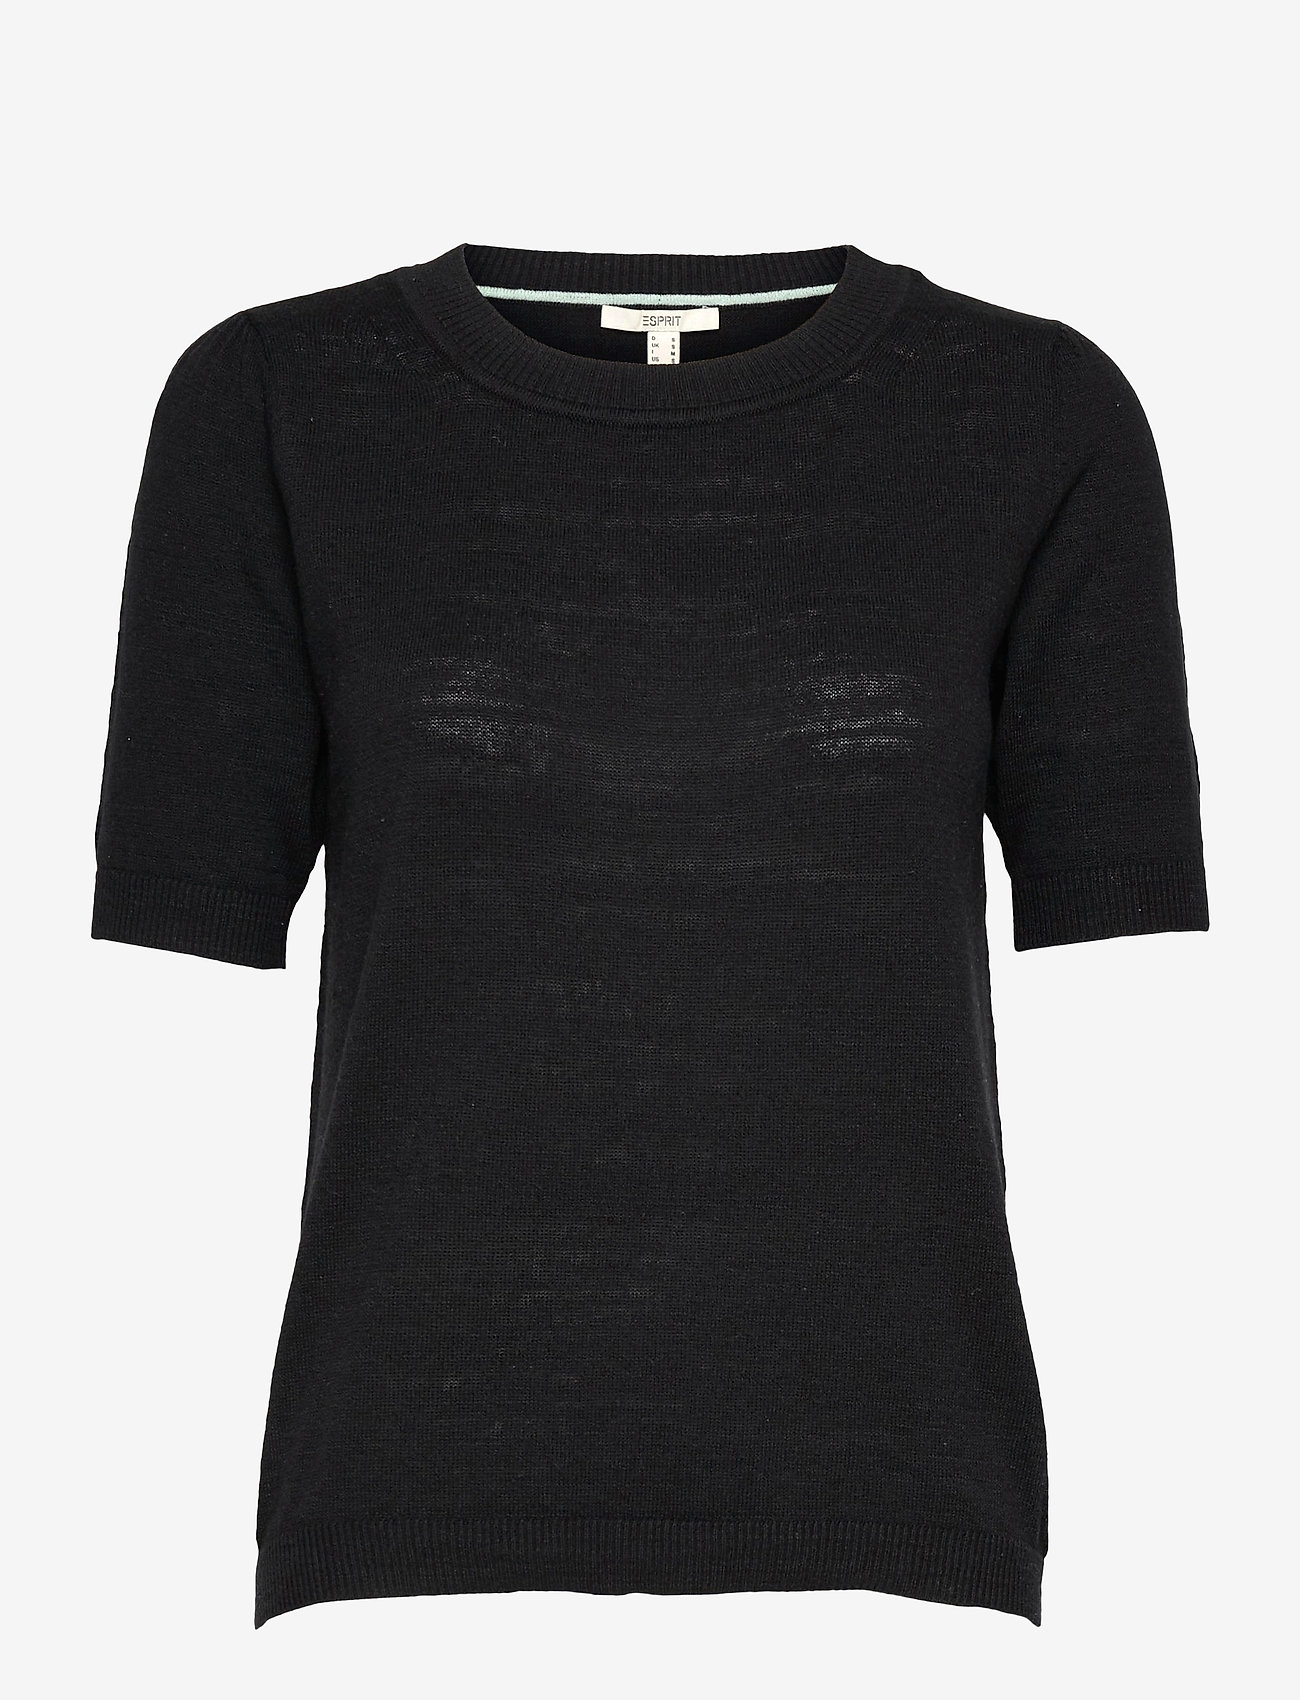 Esprit Casual - Sweaters - strikkede toppe - black - 0